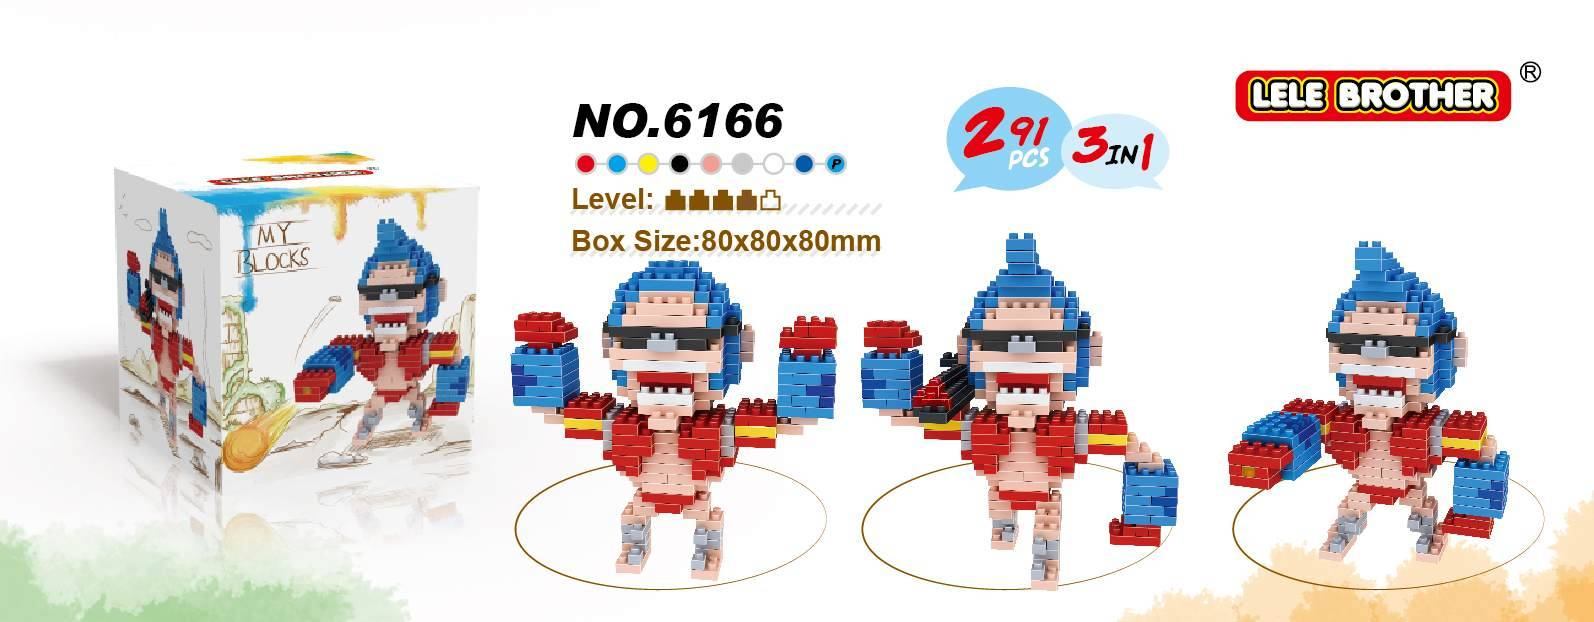 Lele Brother Diamond Block One Piece Series Franky 3 in 1 New Item 2015